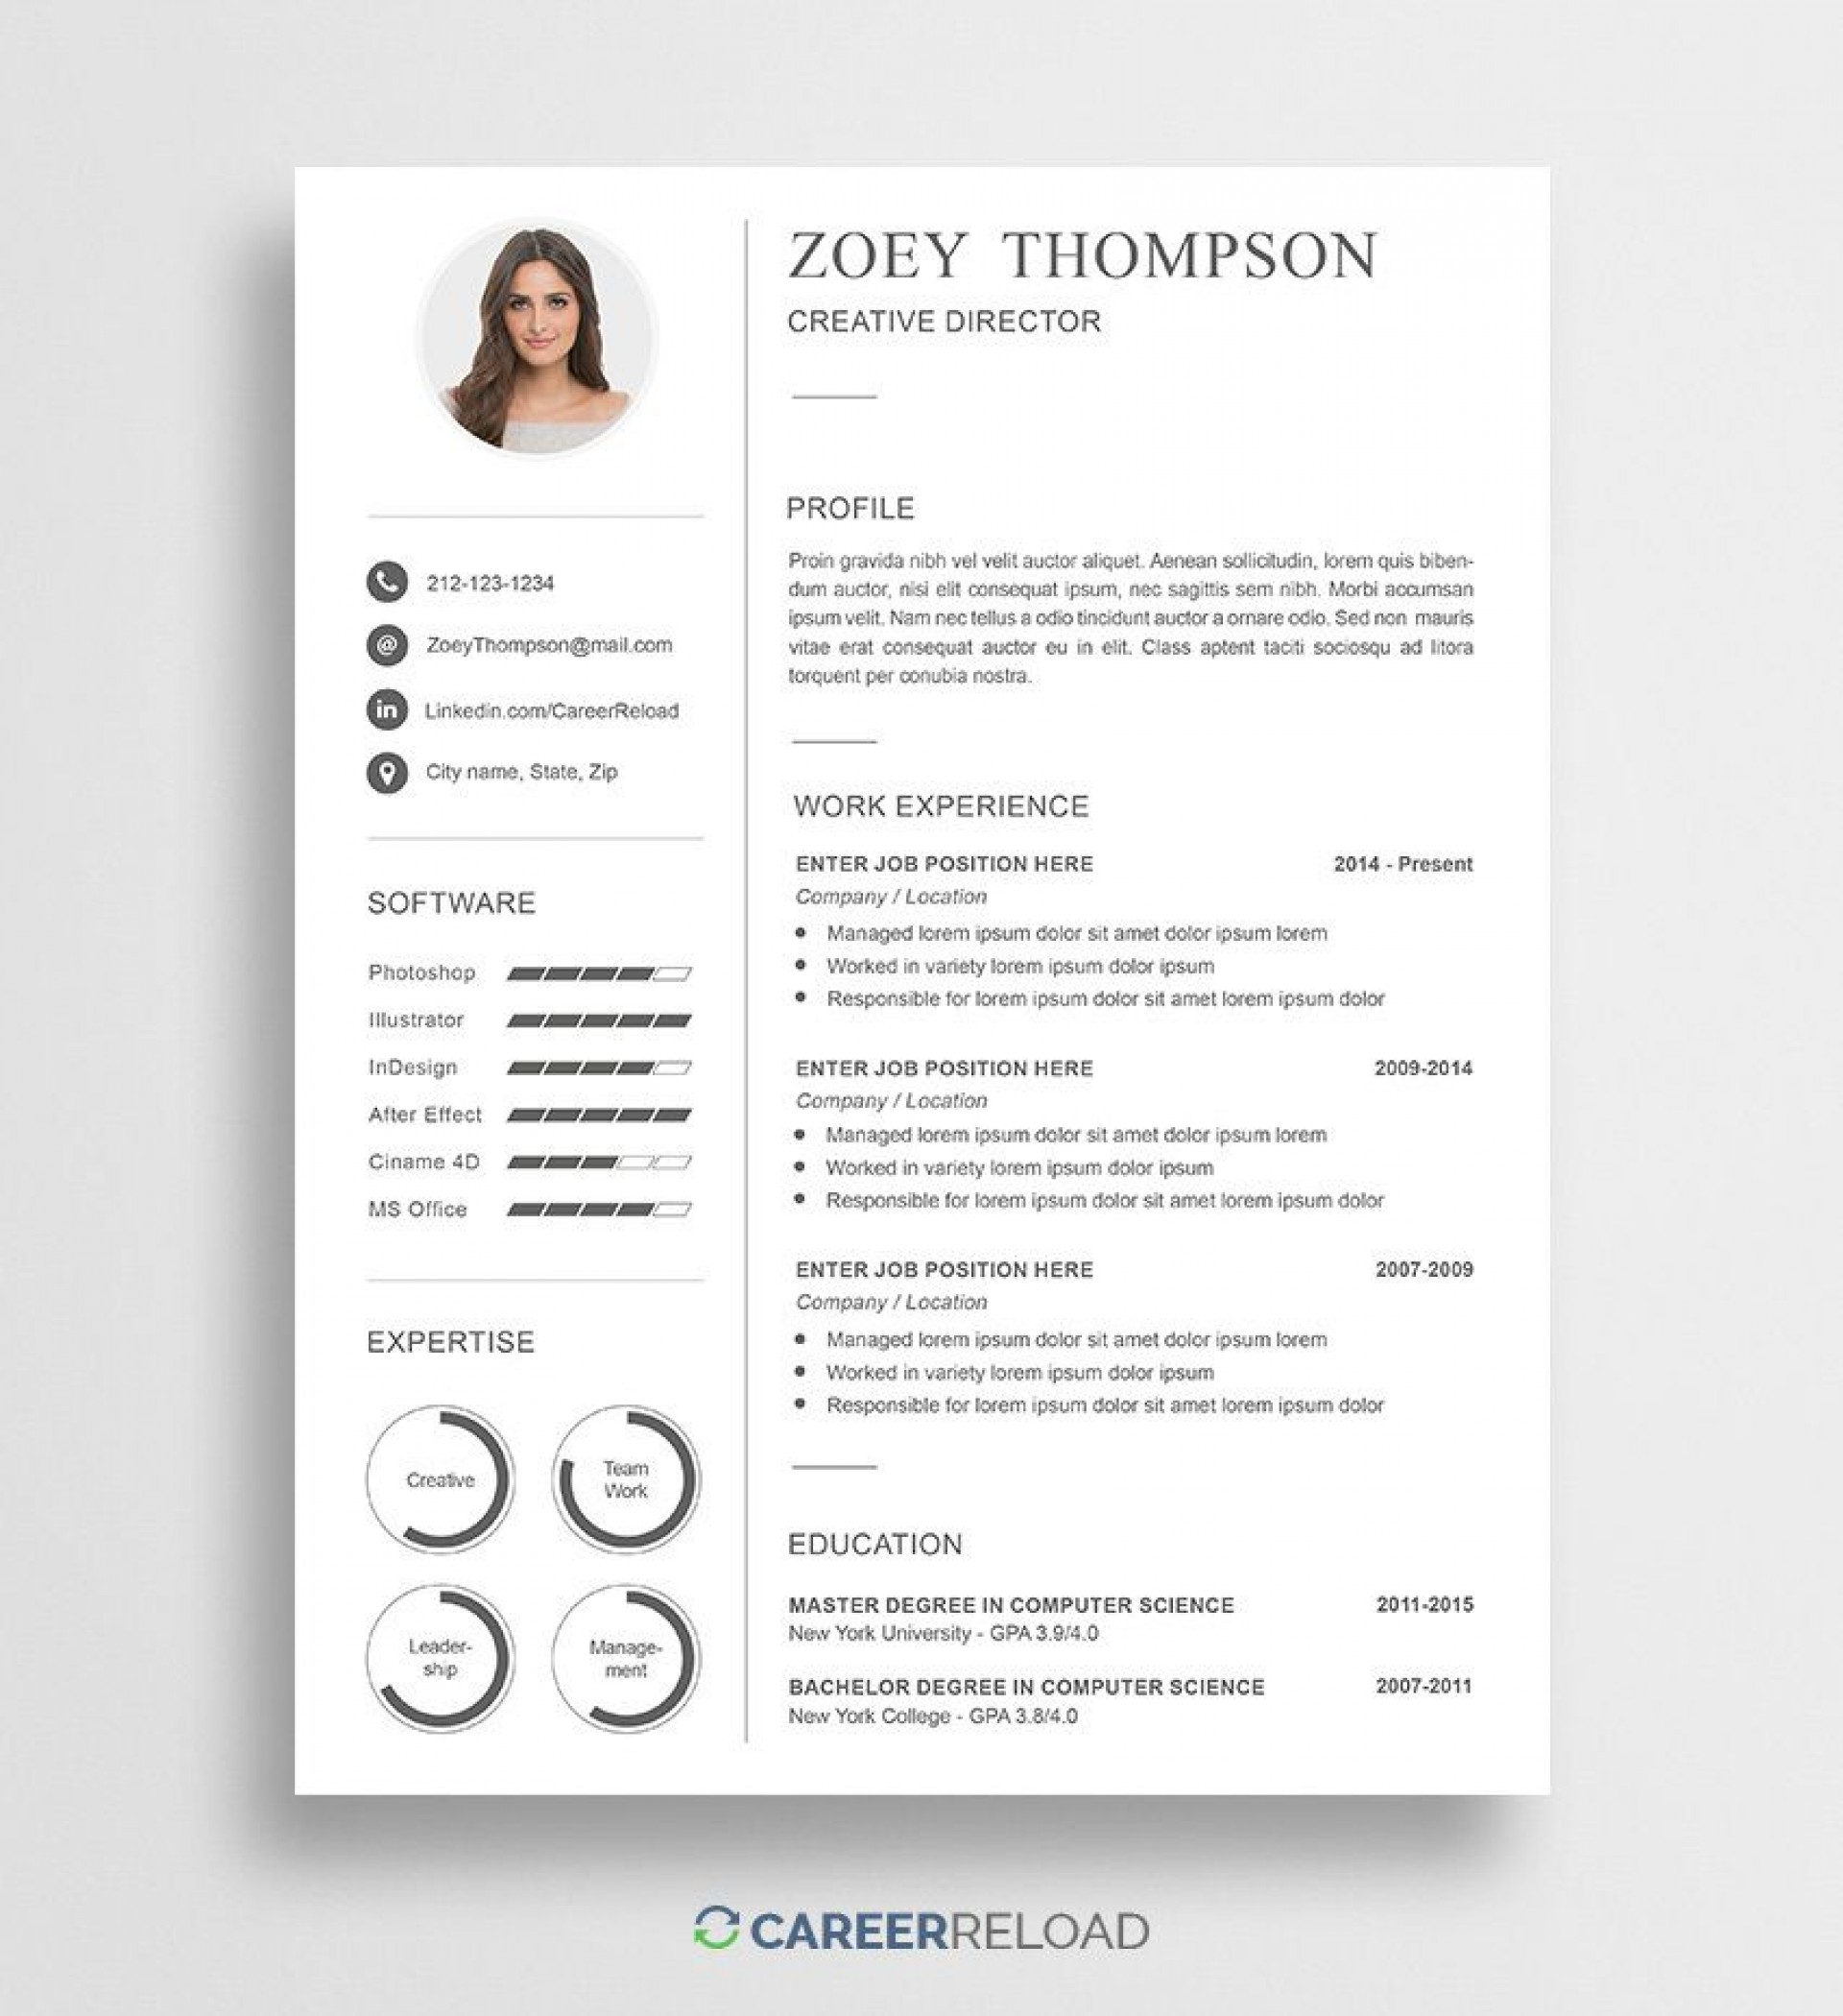 009 Unforgettable Make A Resume Template Free High Resolution  How To Write Create Format Writing1920